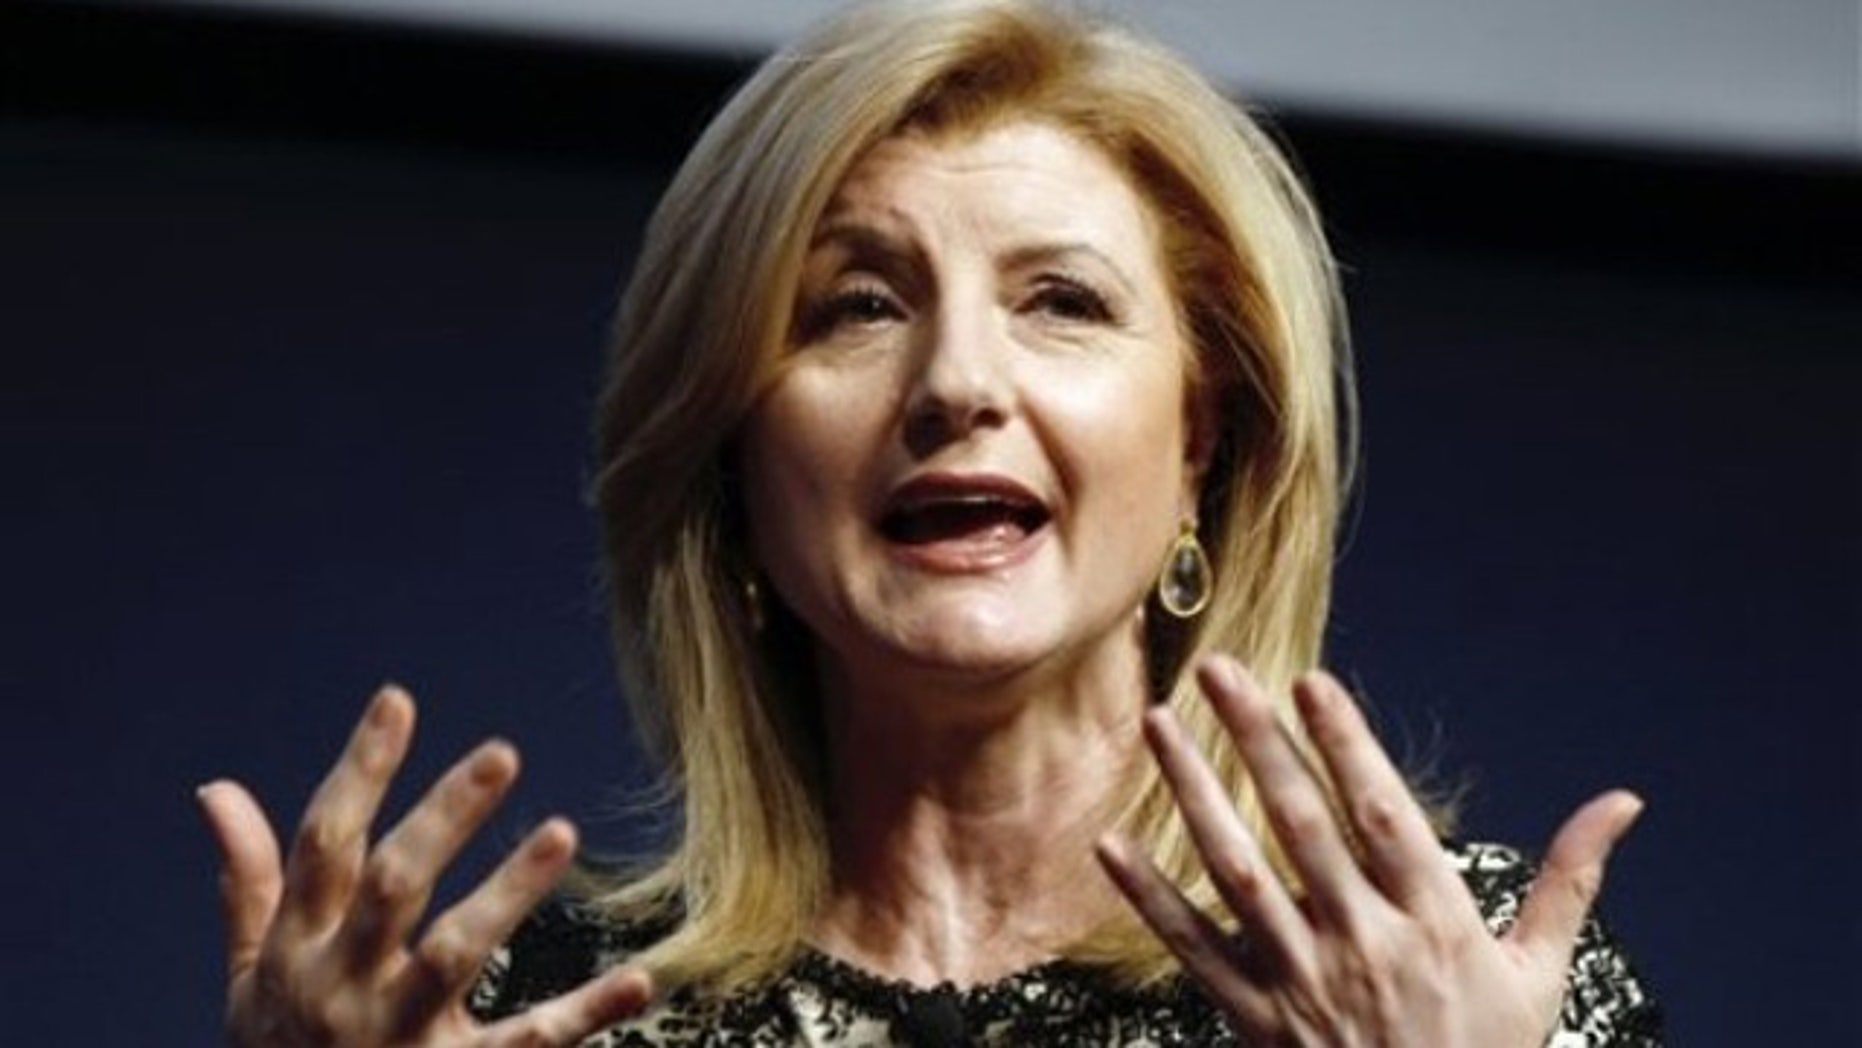 Arianna Huffington will no longer be the editor of all of AOL's online properties.